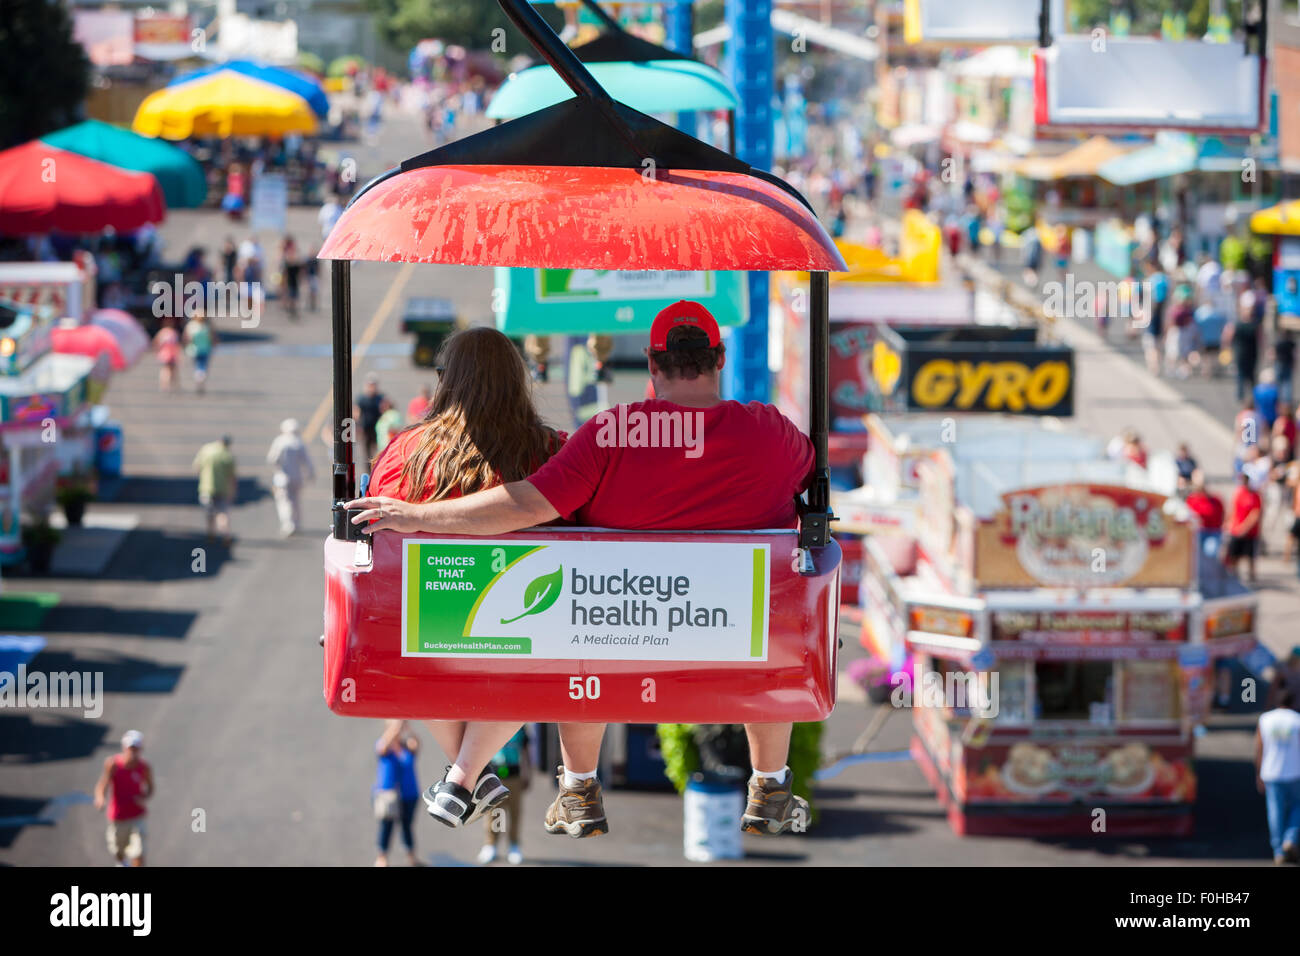 A couple enjoys the view from the Sky Glider high over the midway at the Ohio State Fair in Columbus, Ohio. - Stock Image